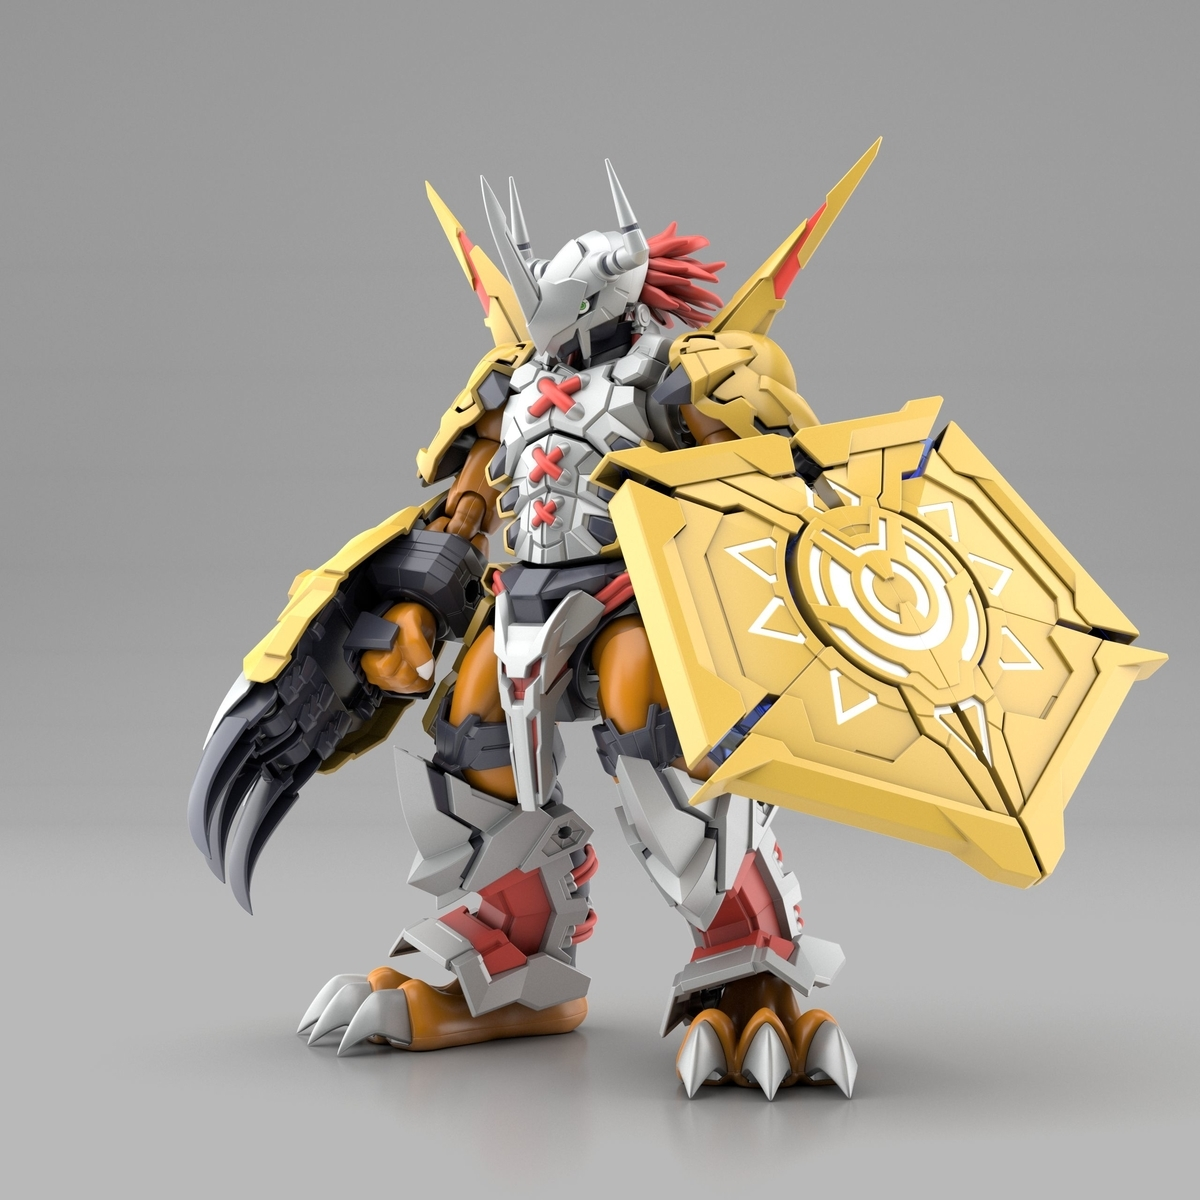 Overview & Introduction To Figure-rise Standard WarGreymon